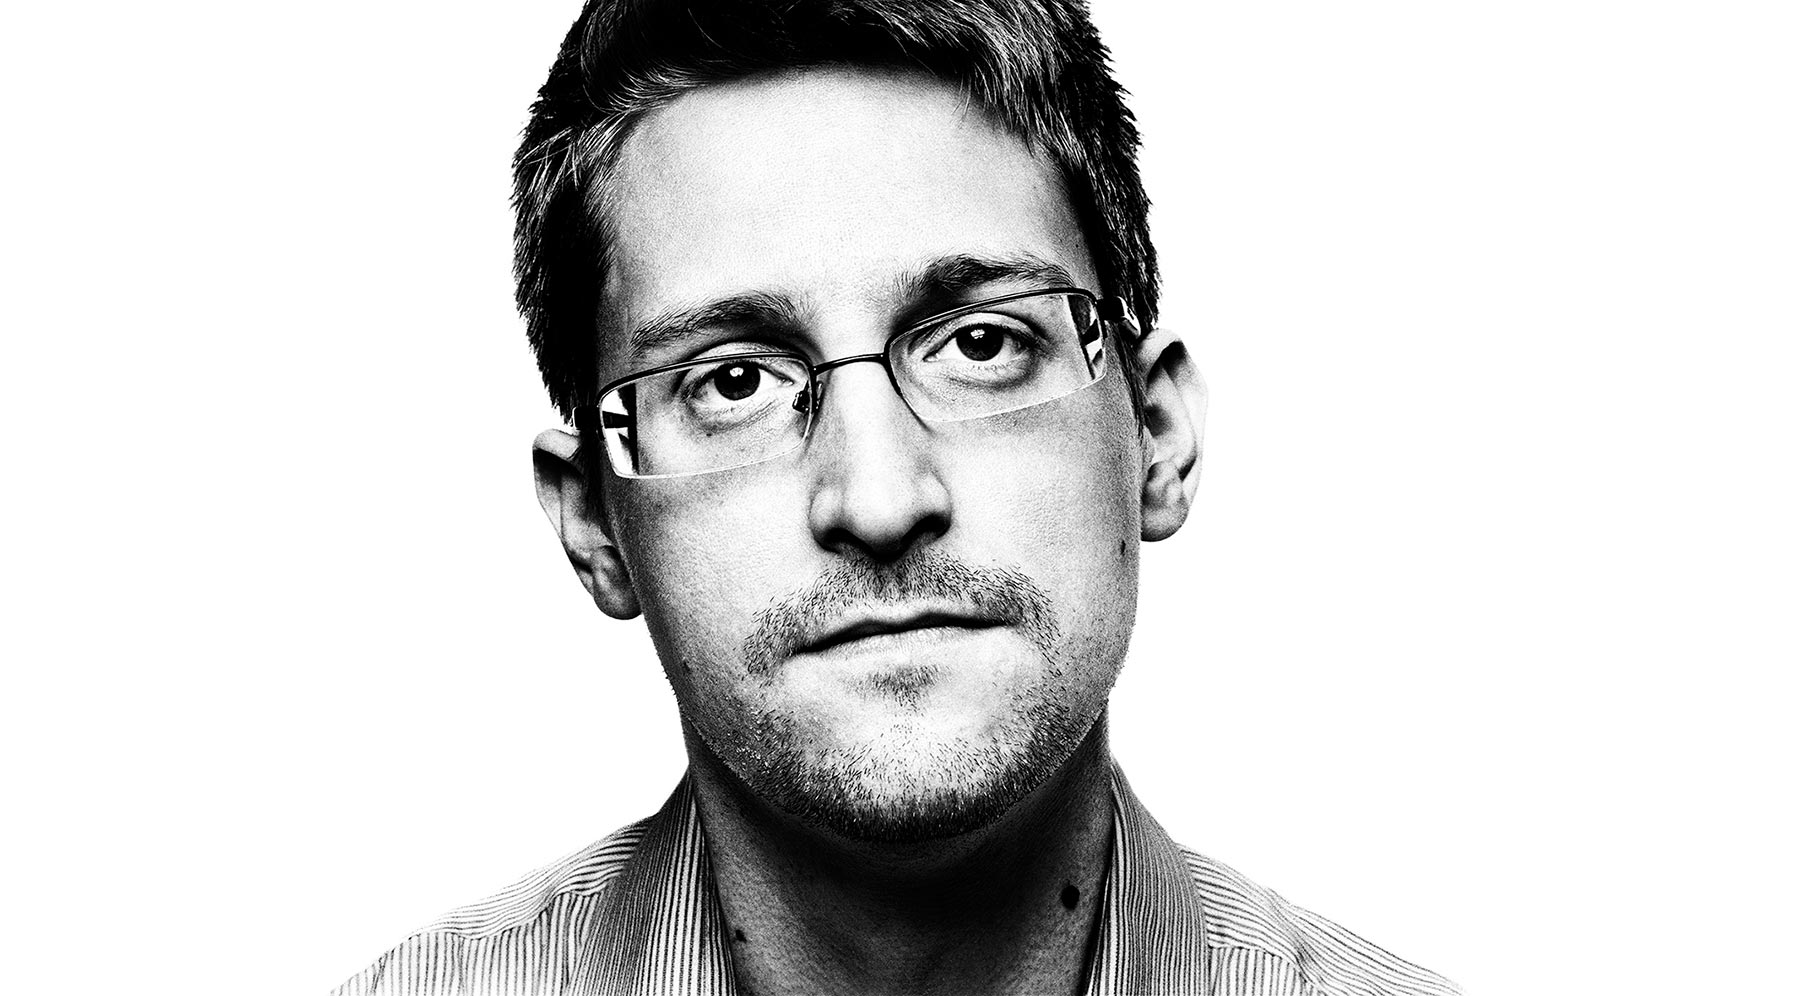 edward-snowden-apple-o-futuro-e-mac-pedro-topete